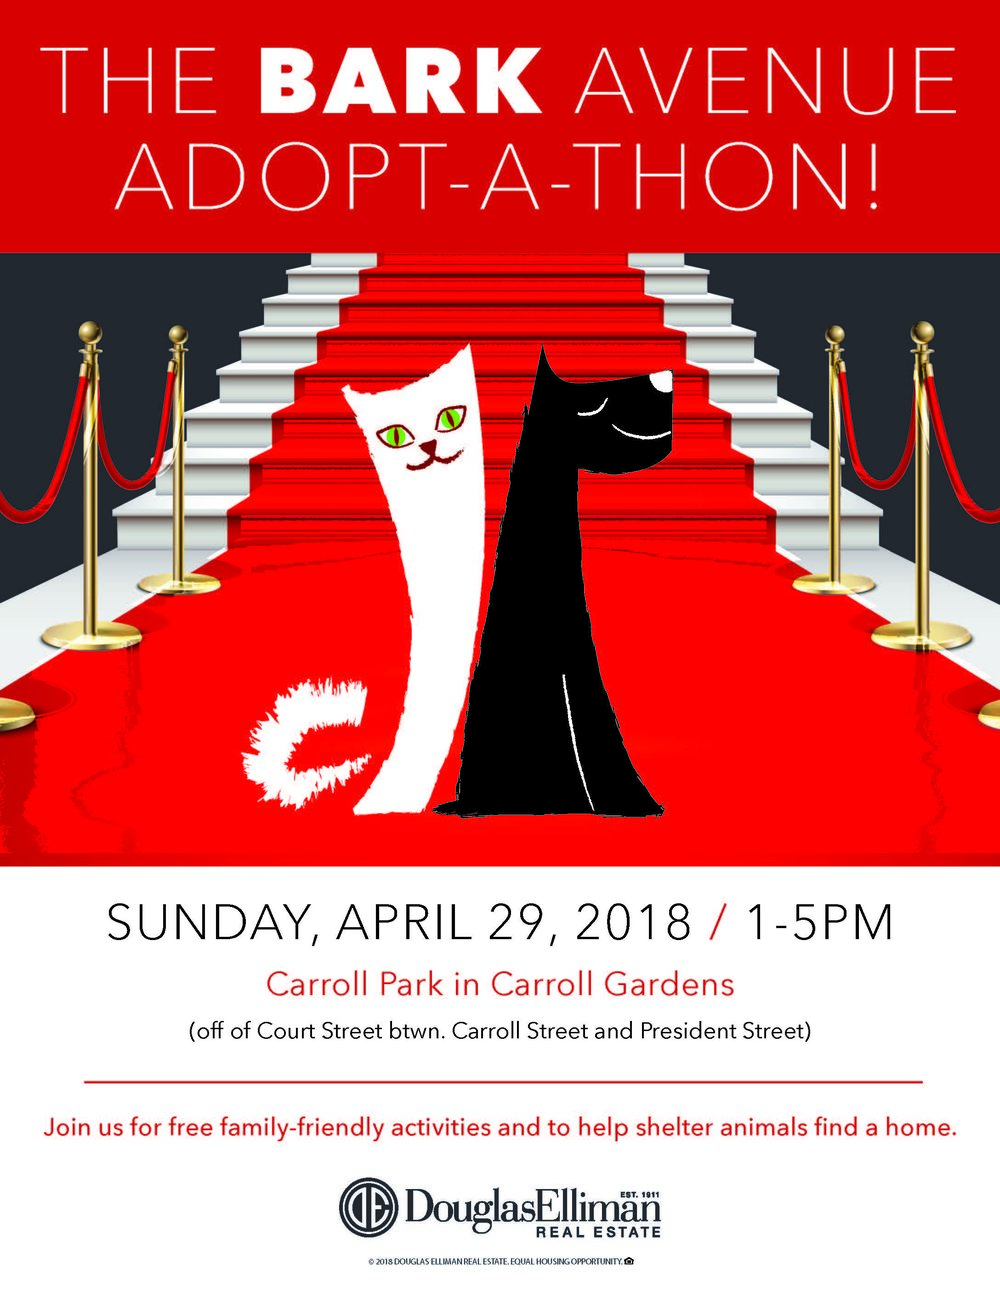 Marion_Fiore_Bark_Adopt-A-Thon_Flyers_R2.jpg